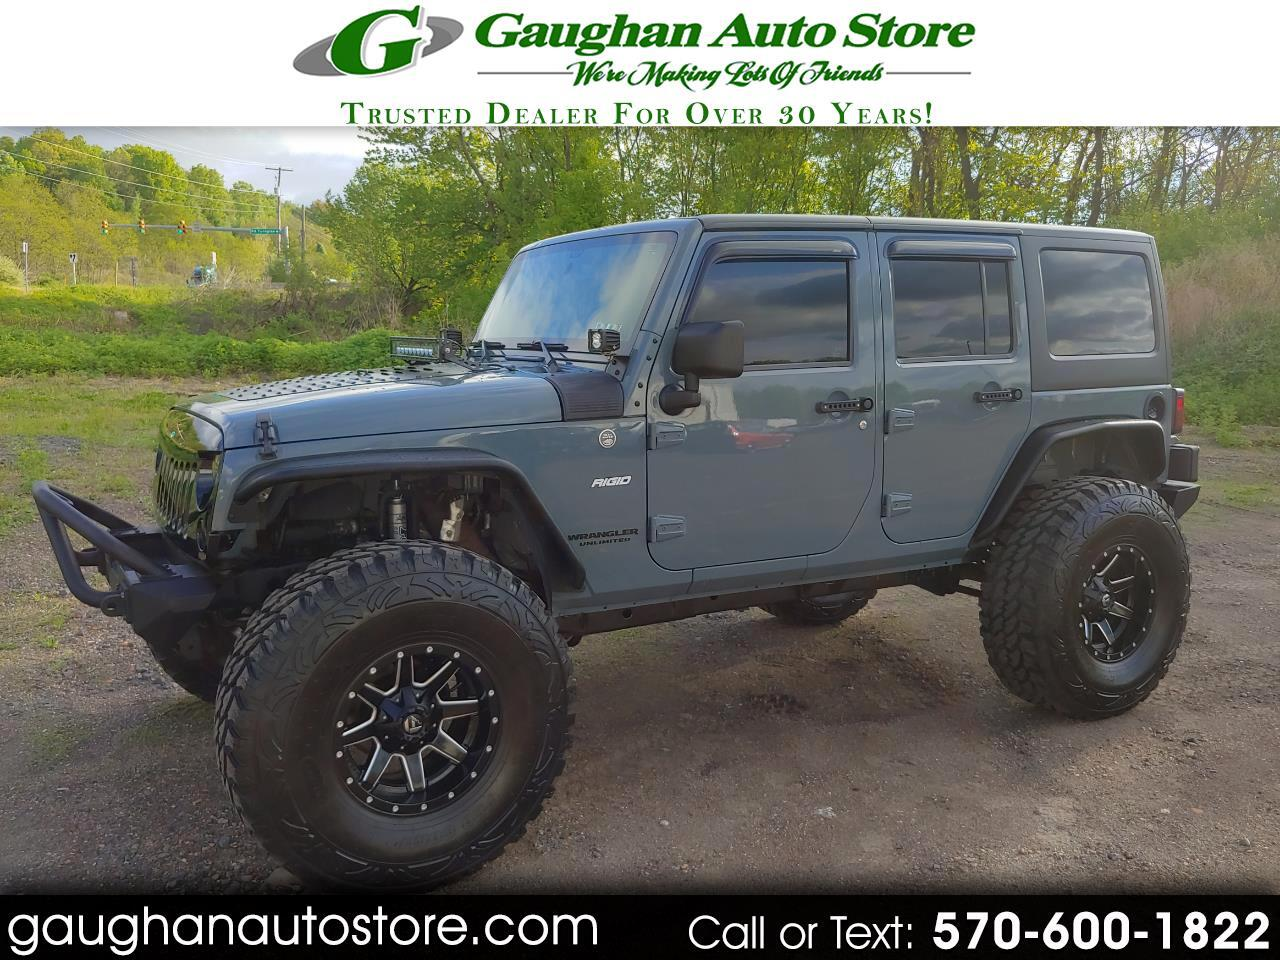 2014 Jeep Wrangler Unlimited 4WD SAHARA LIFTED/40